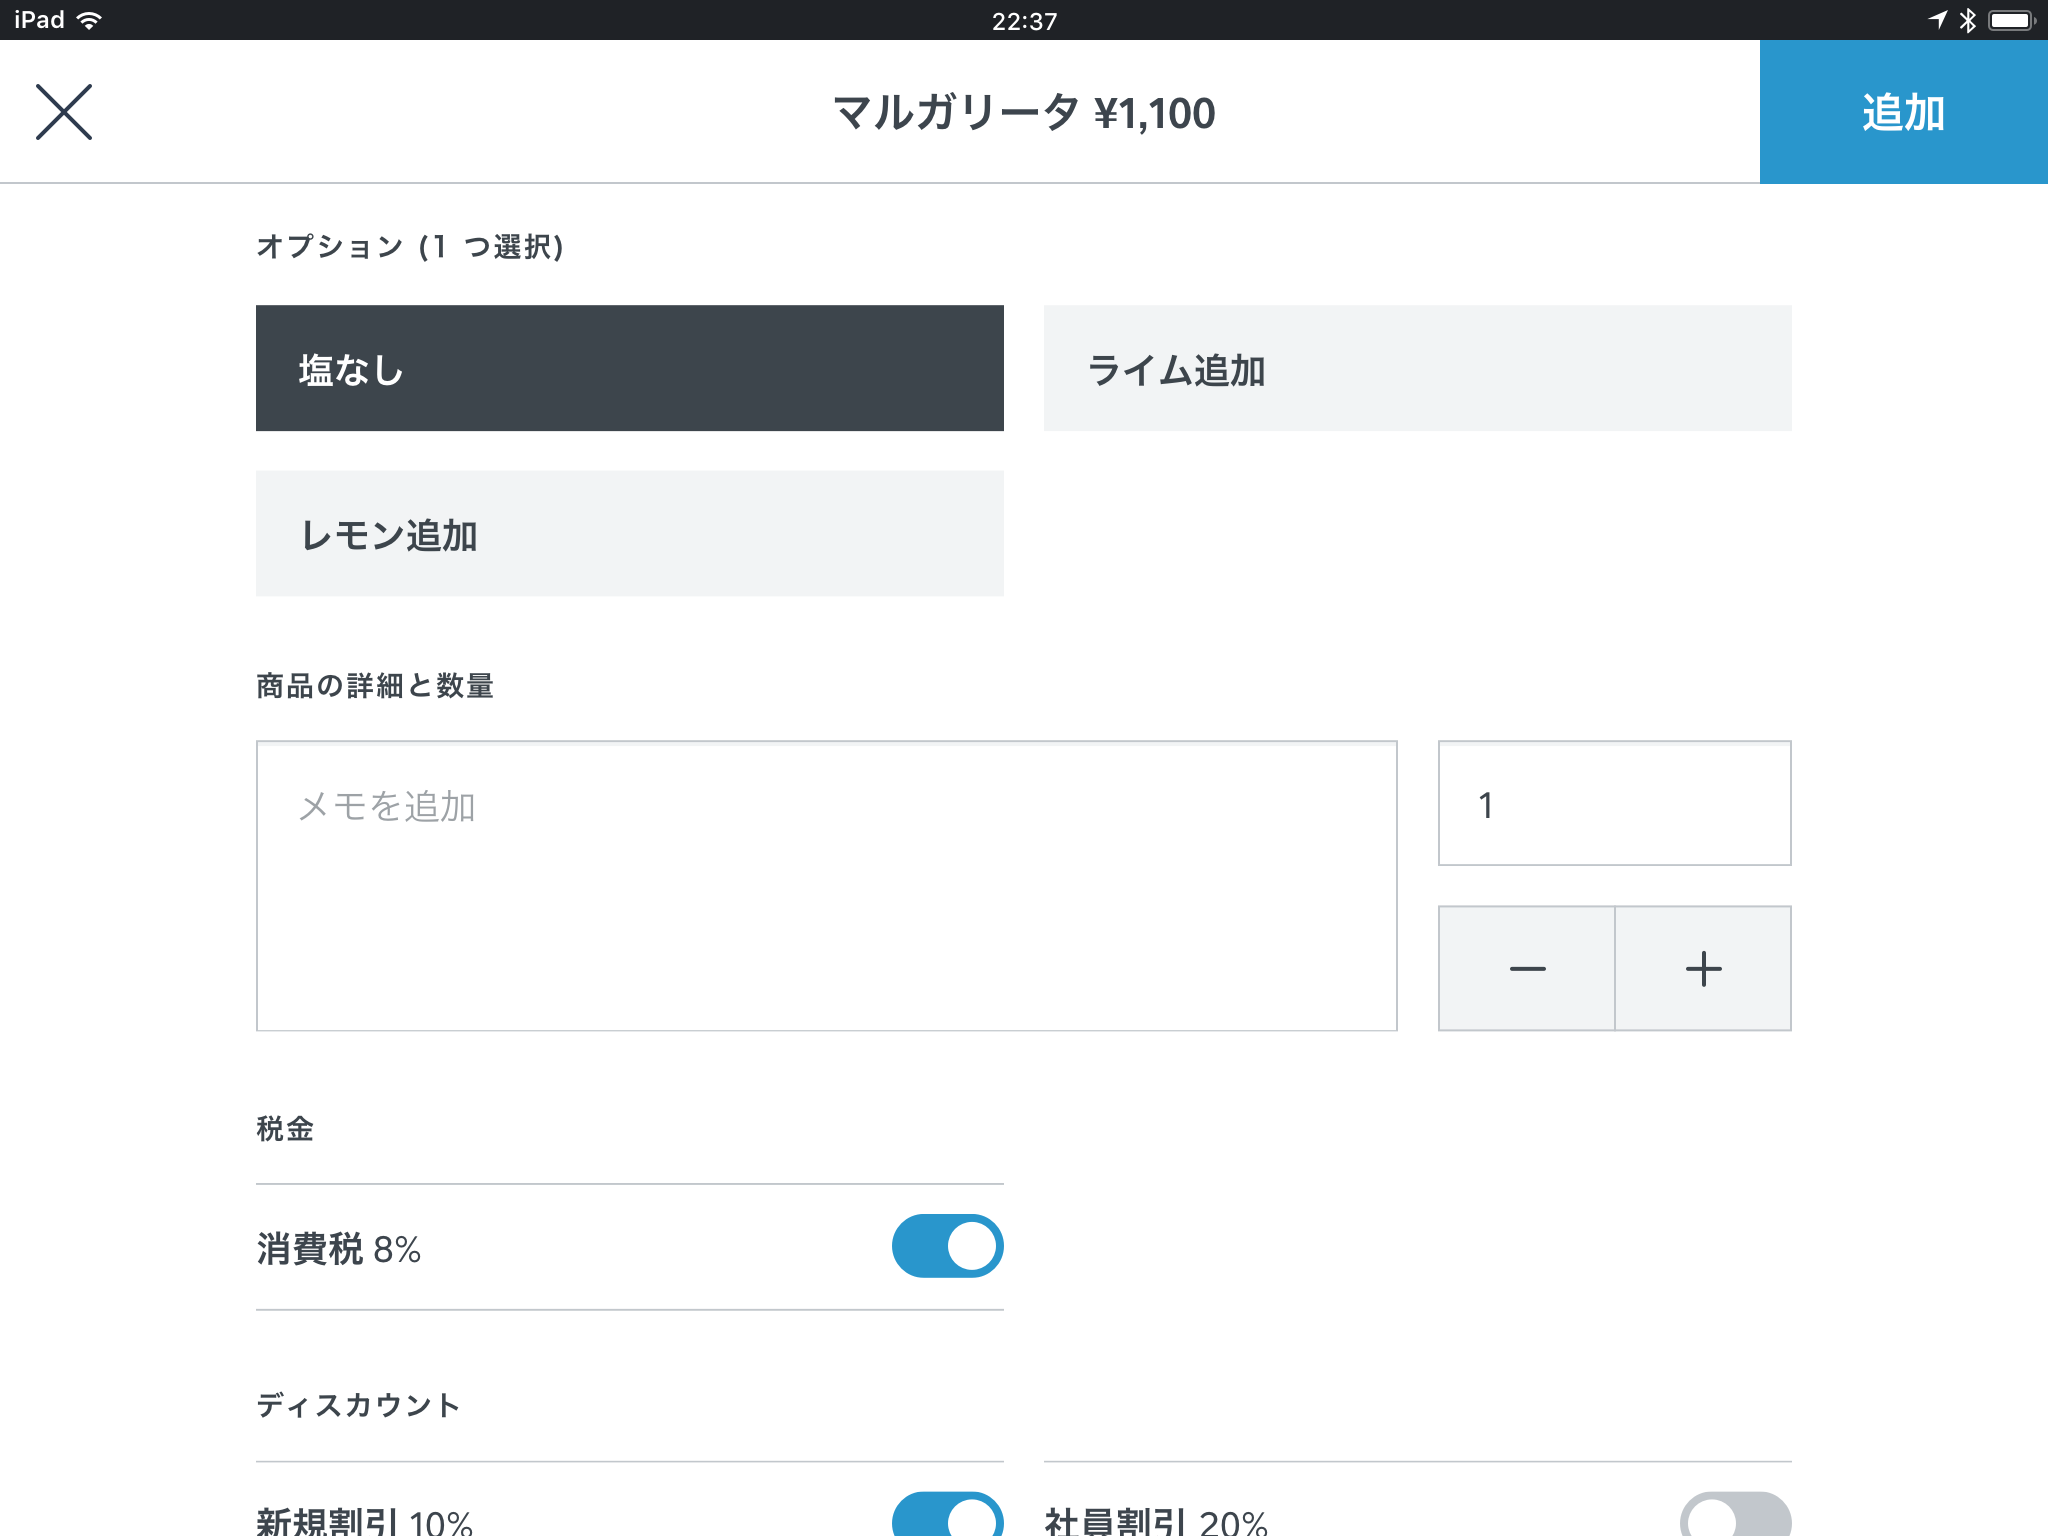 POS_JP_iPad_Modifier_Drinks_4.87